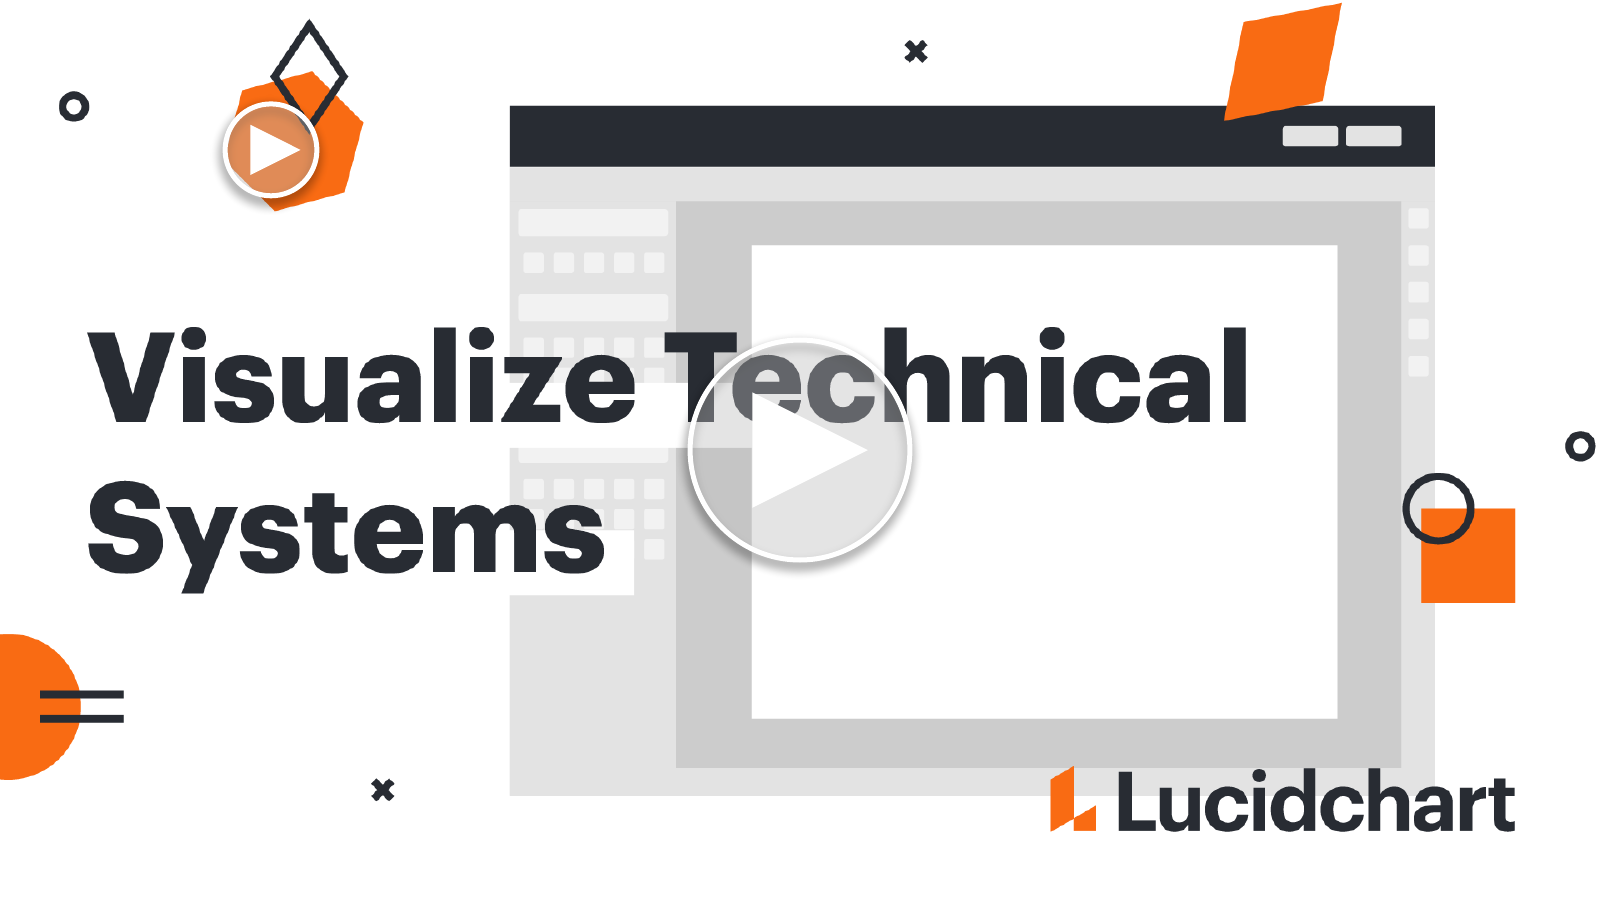 How Lucidchart can help you visualize technical systems